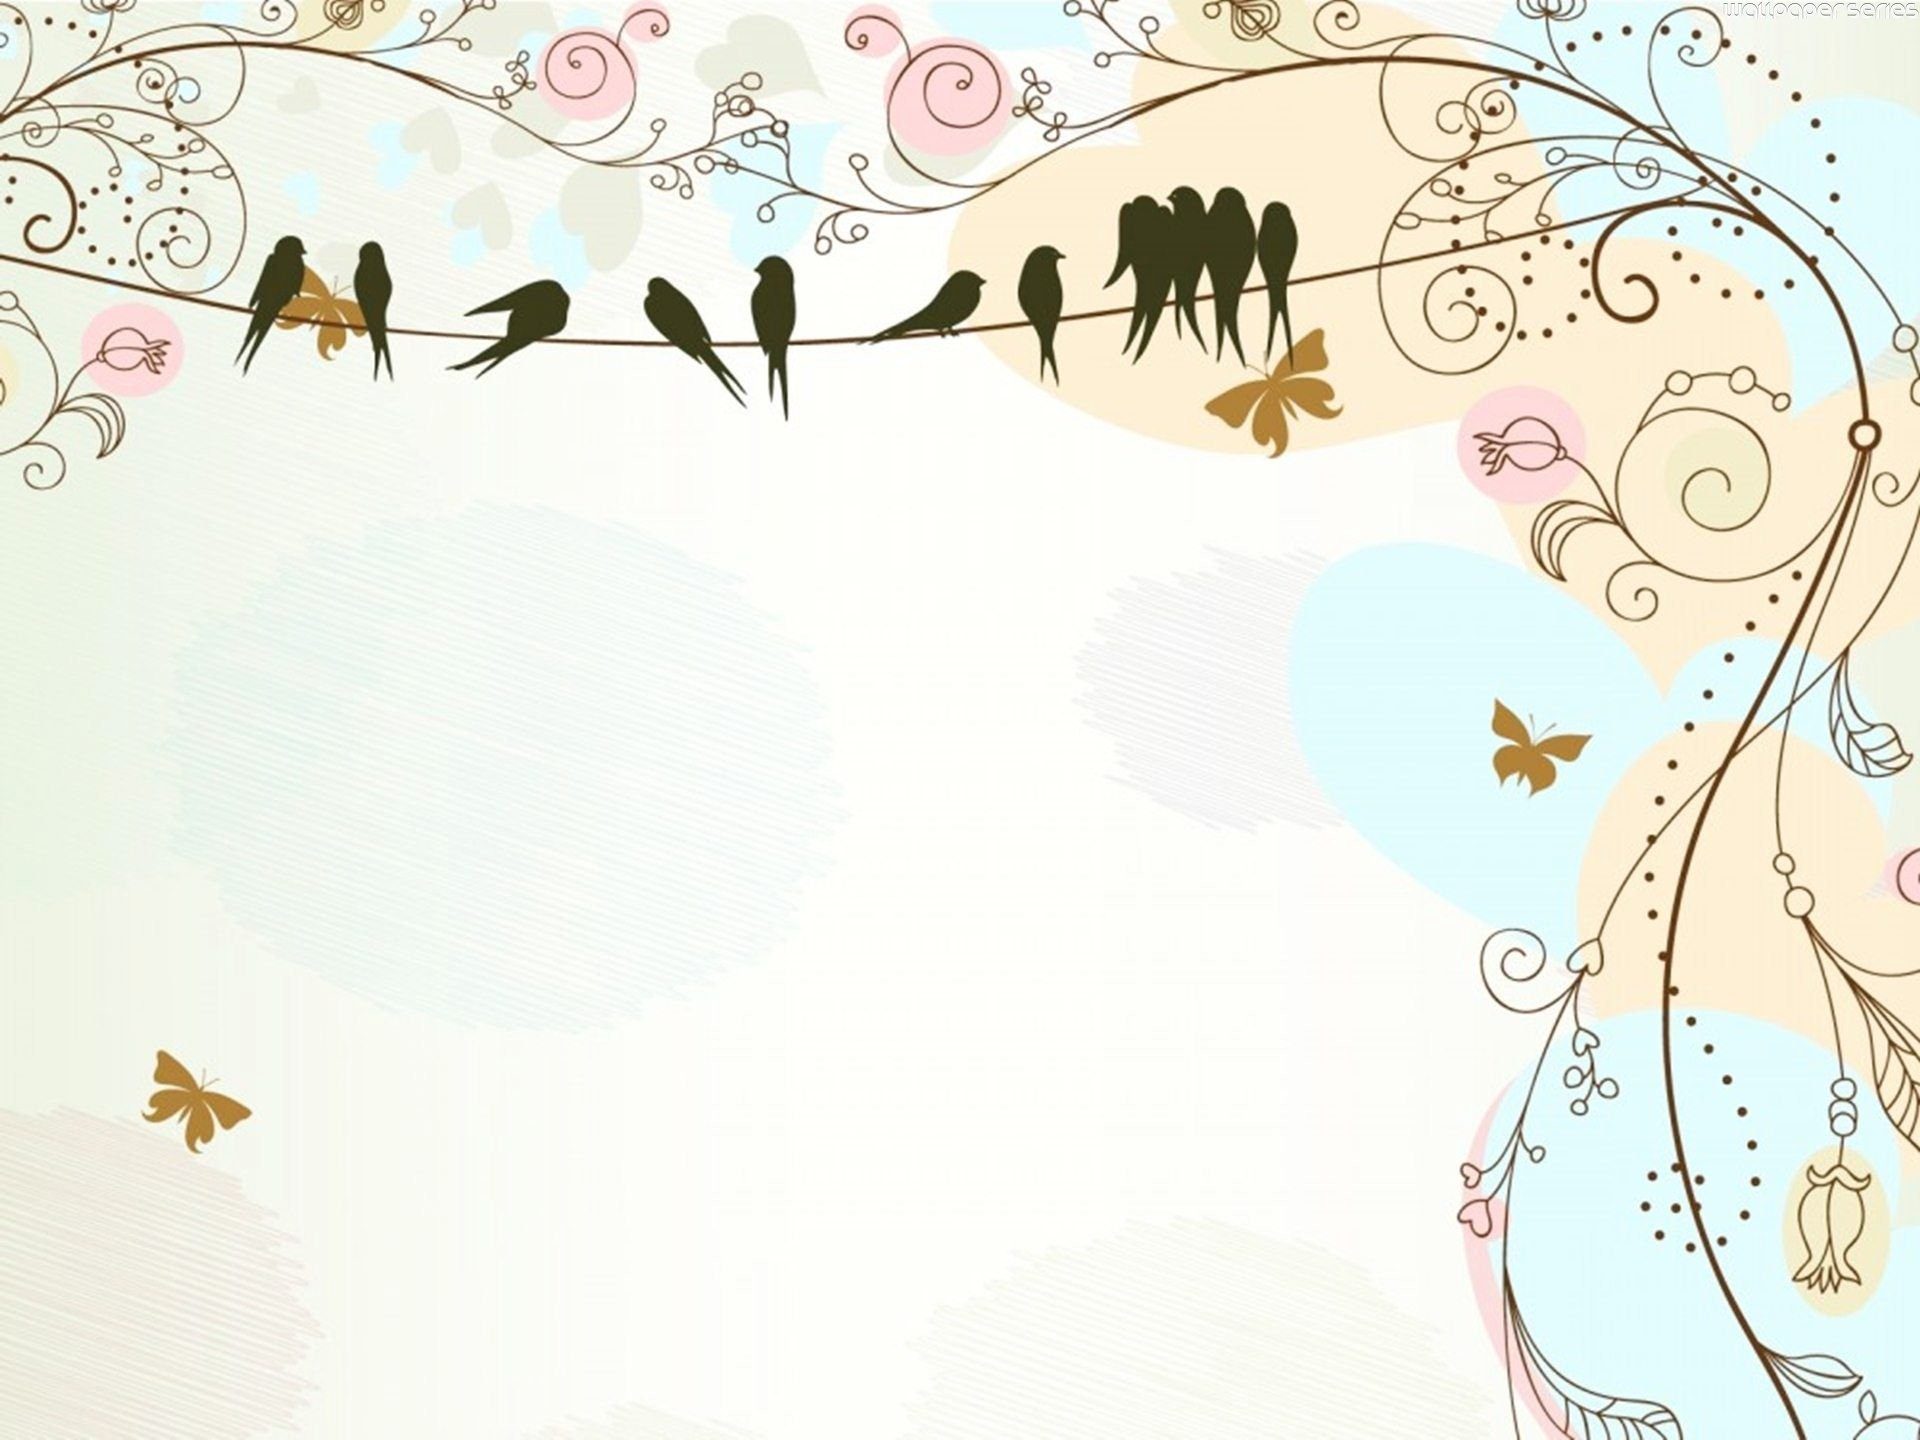 Precious Moments Backgrounds (32+ images)